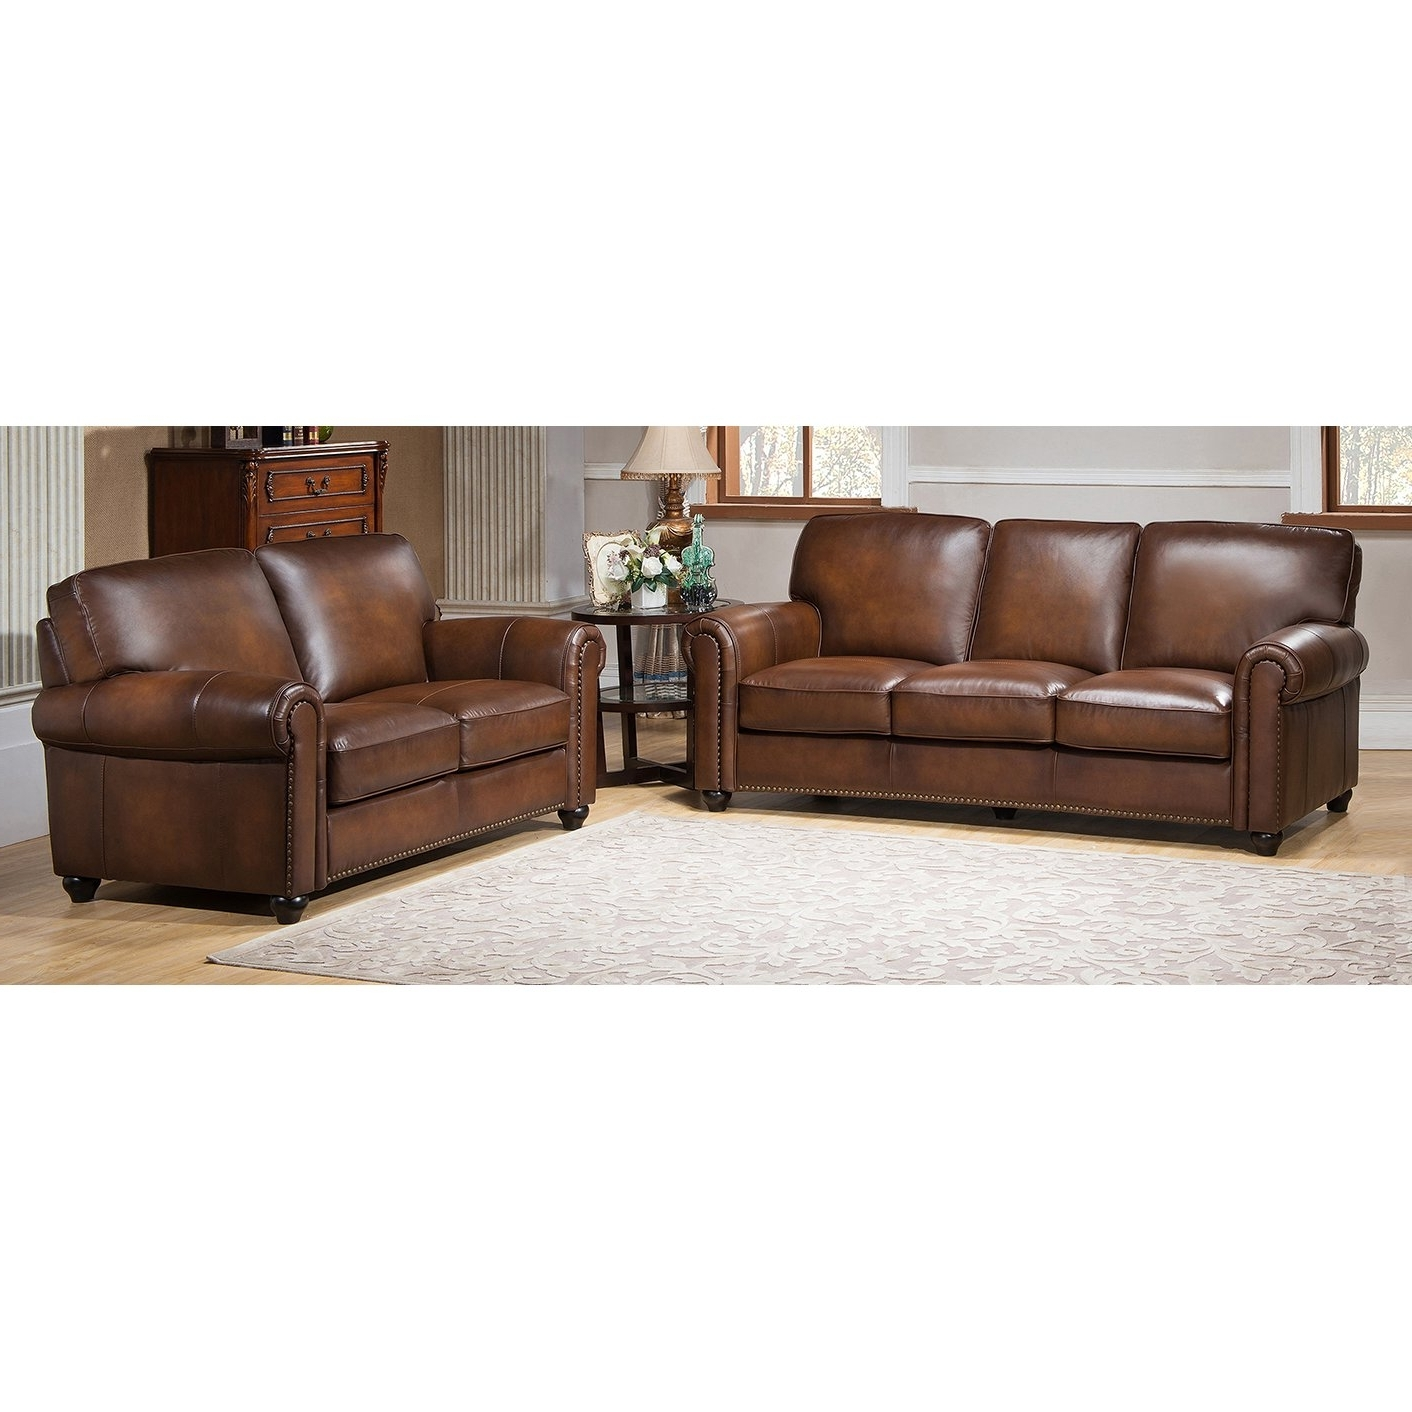 Lazyboy Sectional Prices Abbyson Montgomery Leather Reversible Pertaining To Trendy Sectional Sofas At Sam's Club (View 7 of 15)